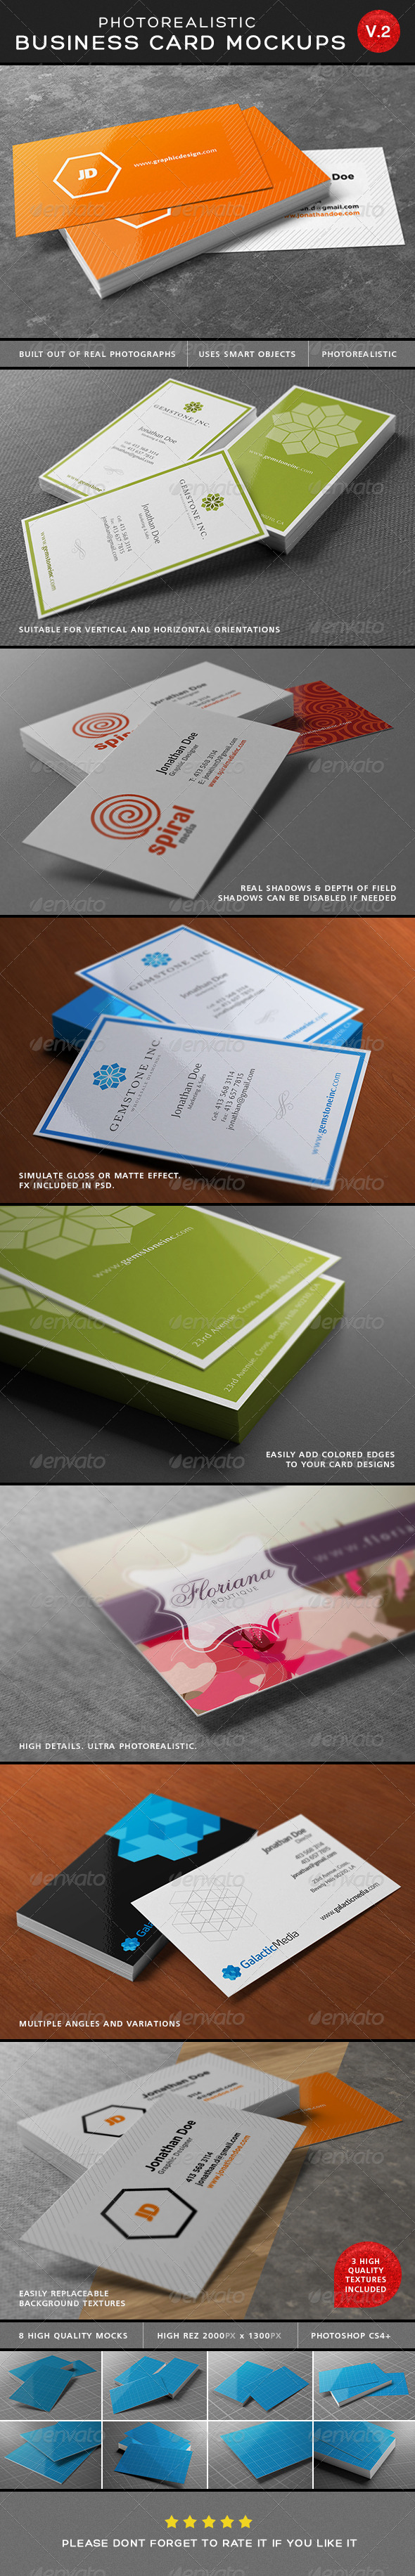 Ultimate Photorealistic Business Card Mockups V2 - Business Cards Print